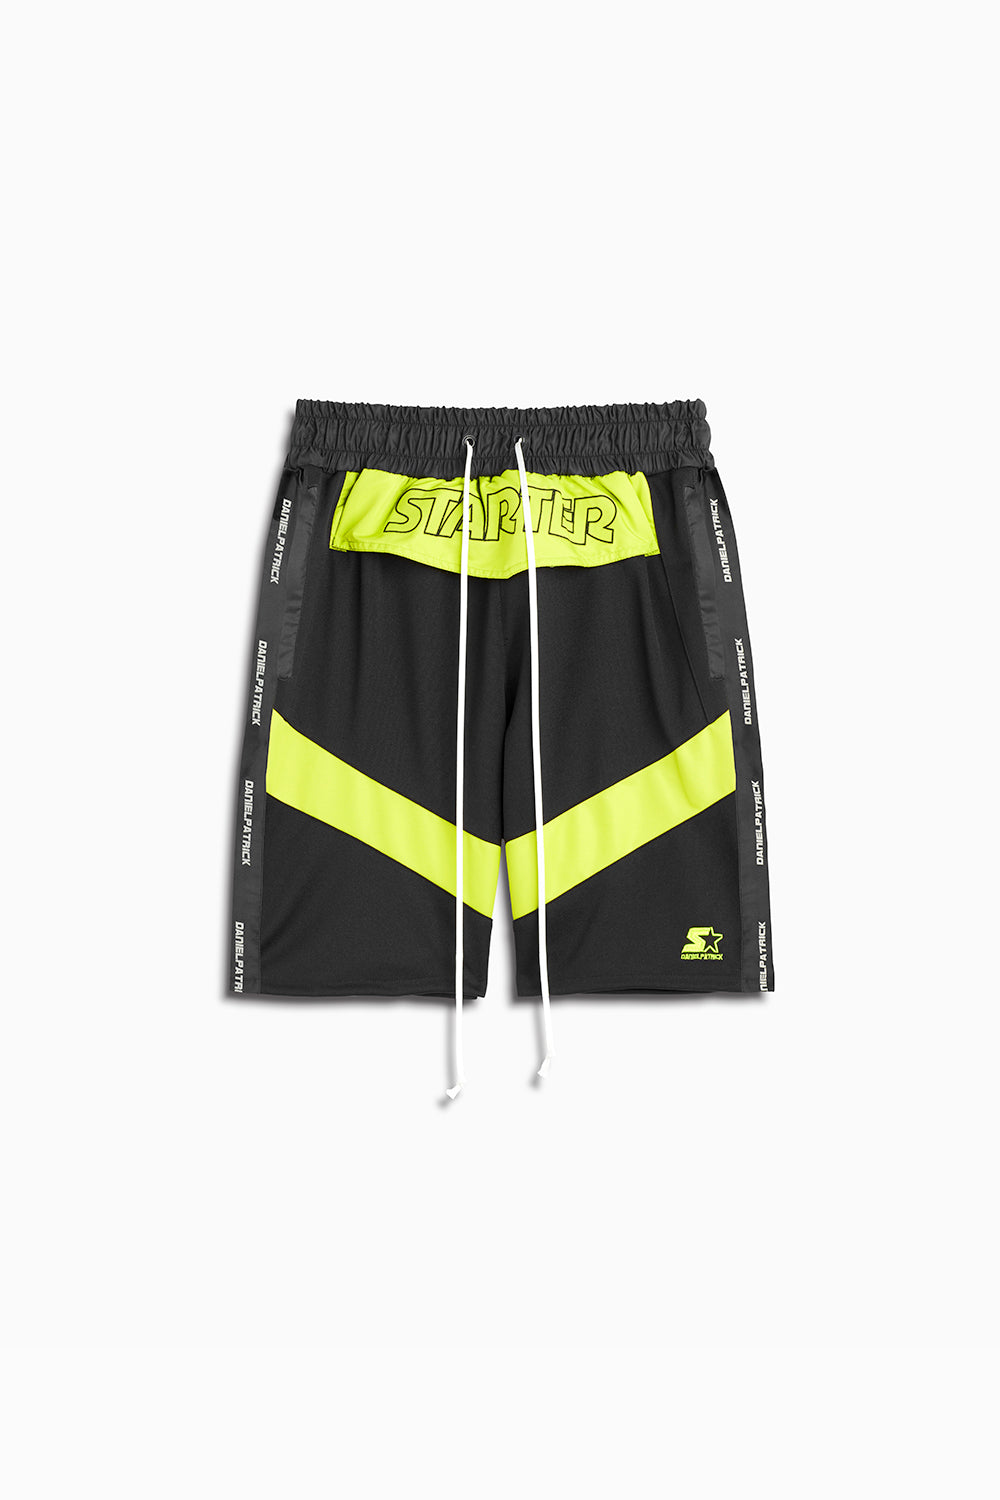 dp starter breakaway shorts in black/citrus lime by daniel patrick x starter